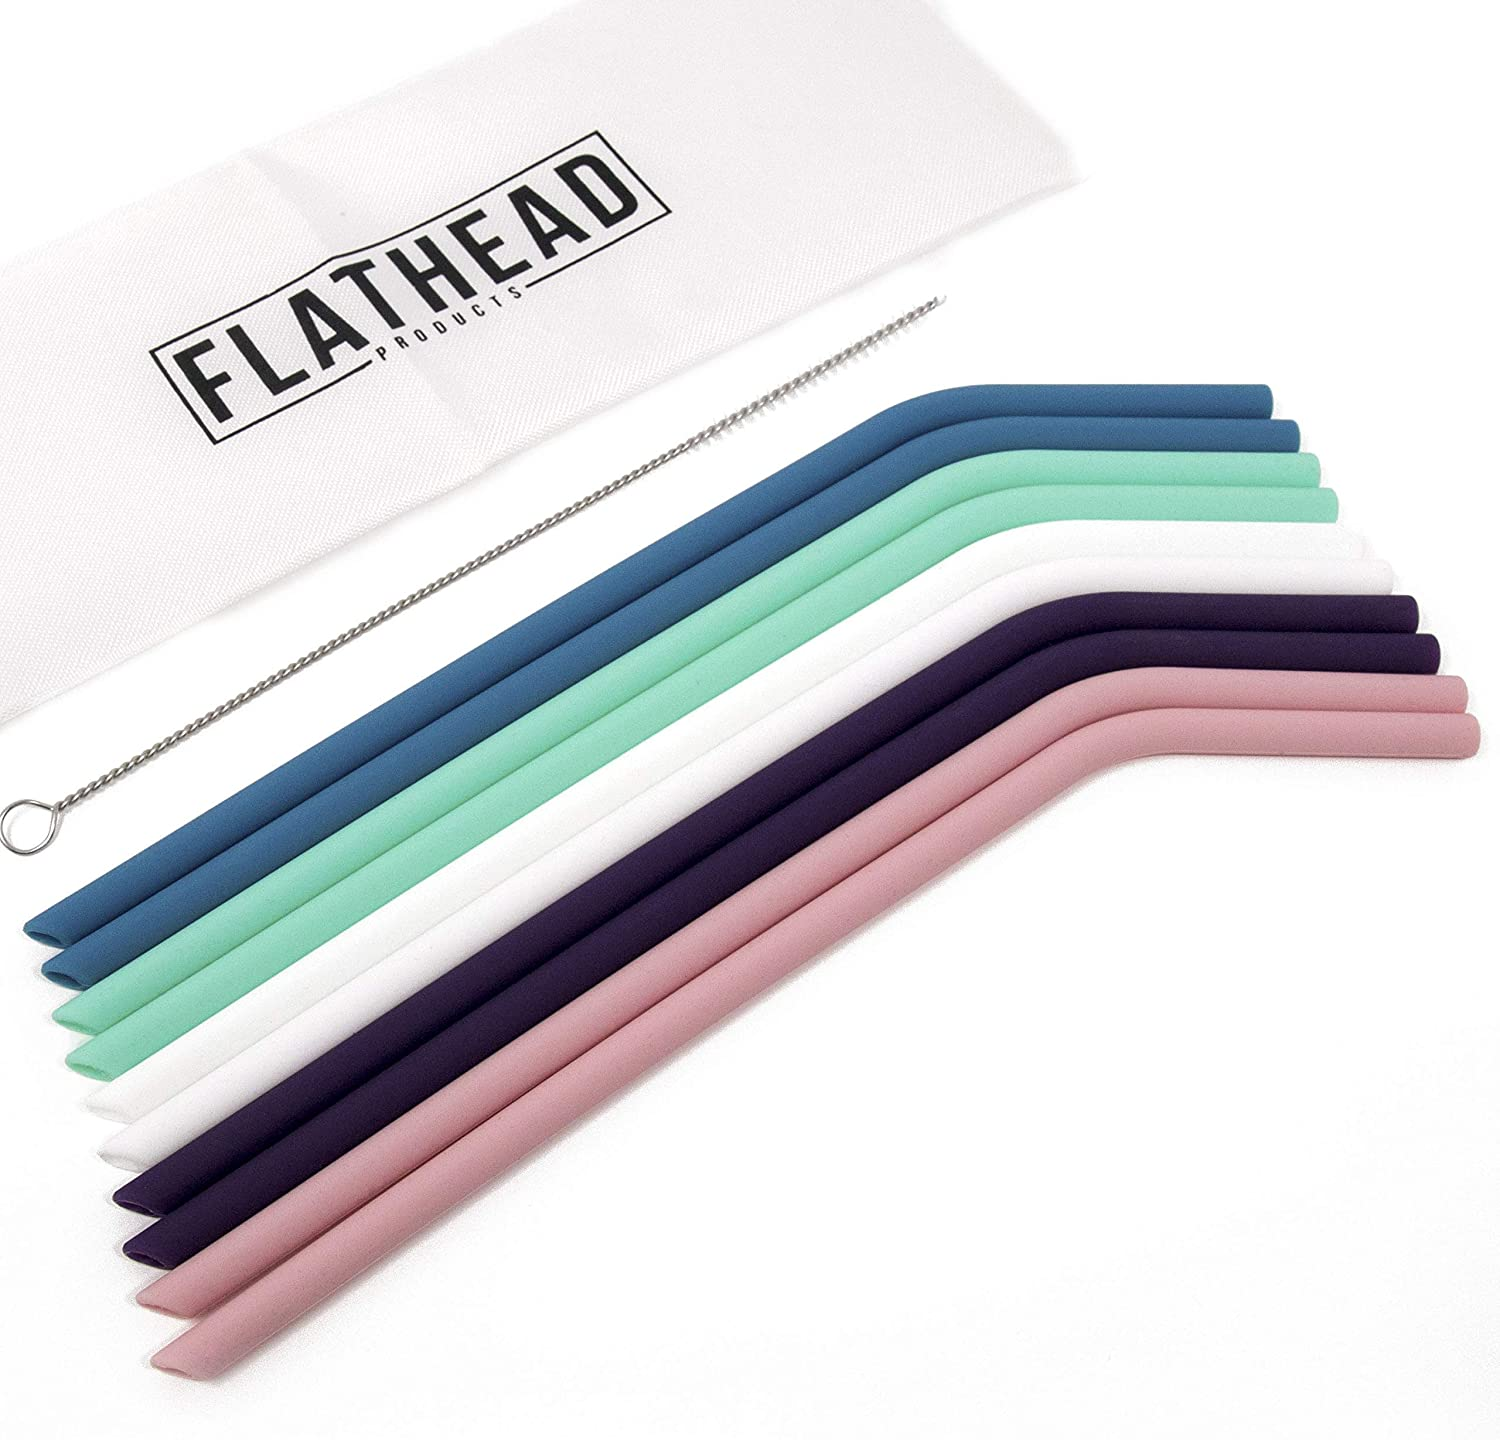 Reusable straws by flathead, great for travel